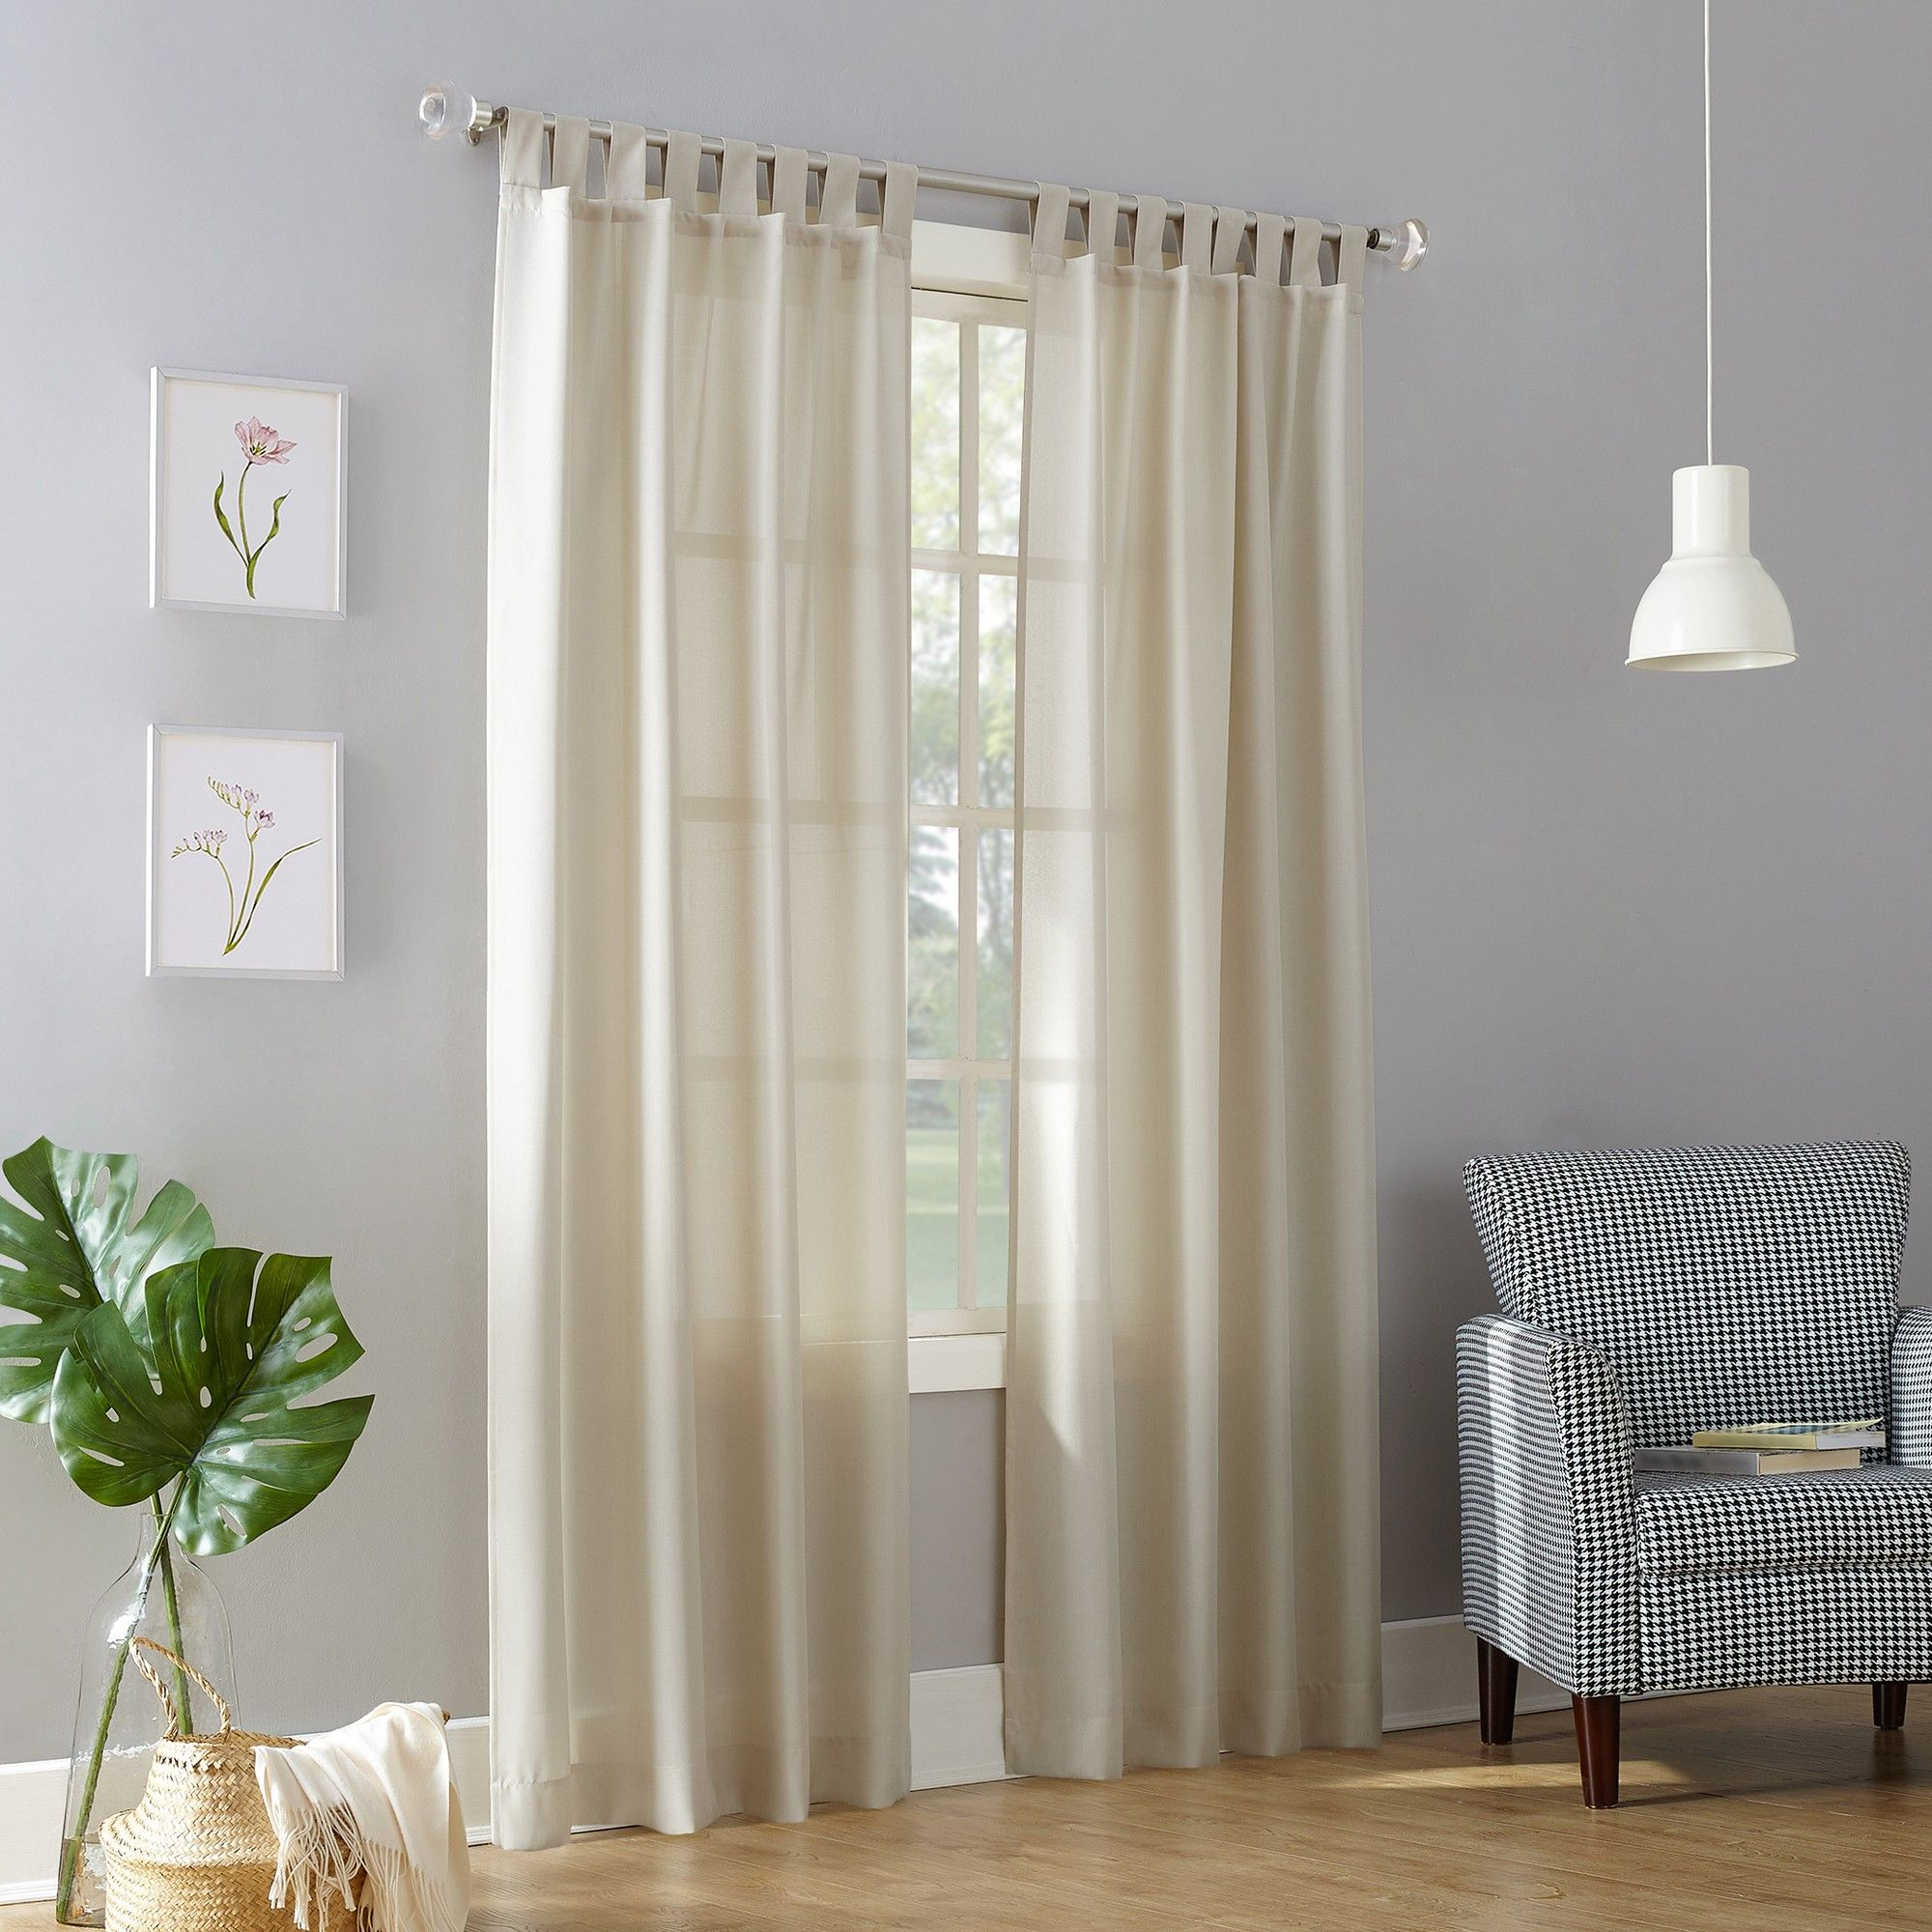 Joshua Casual Textured Semi Sheer Tab Top Curtain Panel Ecru In Archaeo Washed Cotton Twist Tab Single Curtain Panels (View 6 of 20)